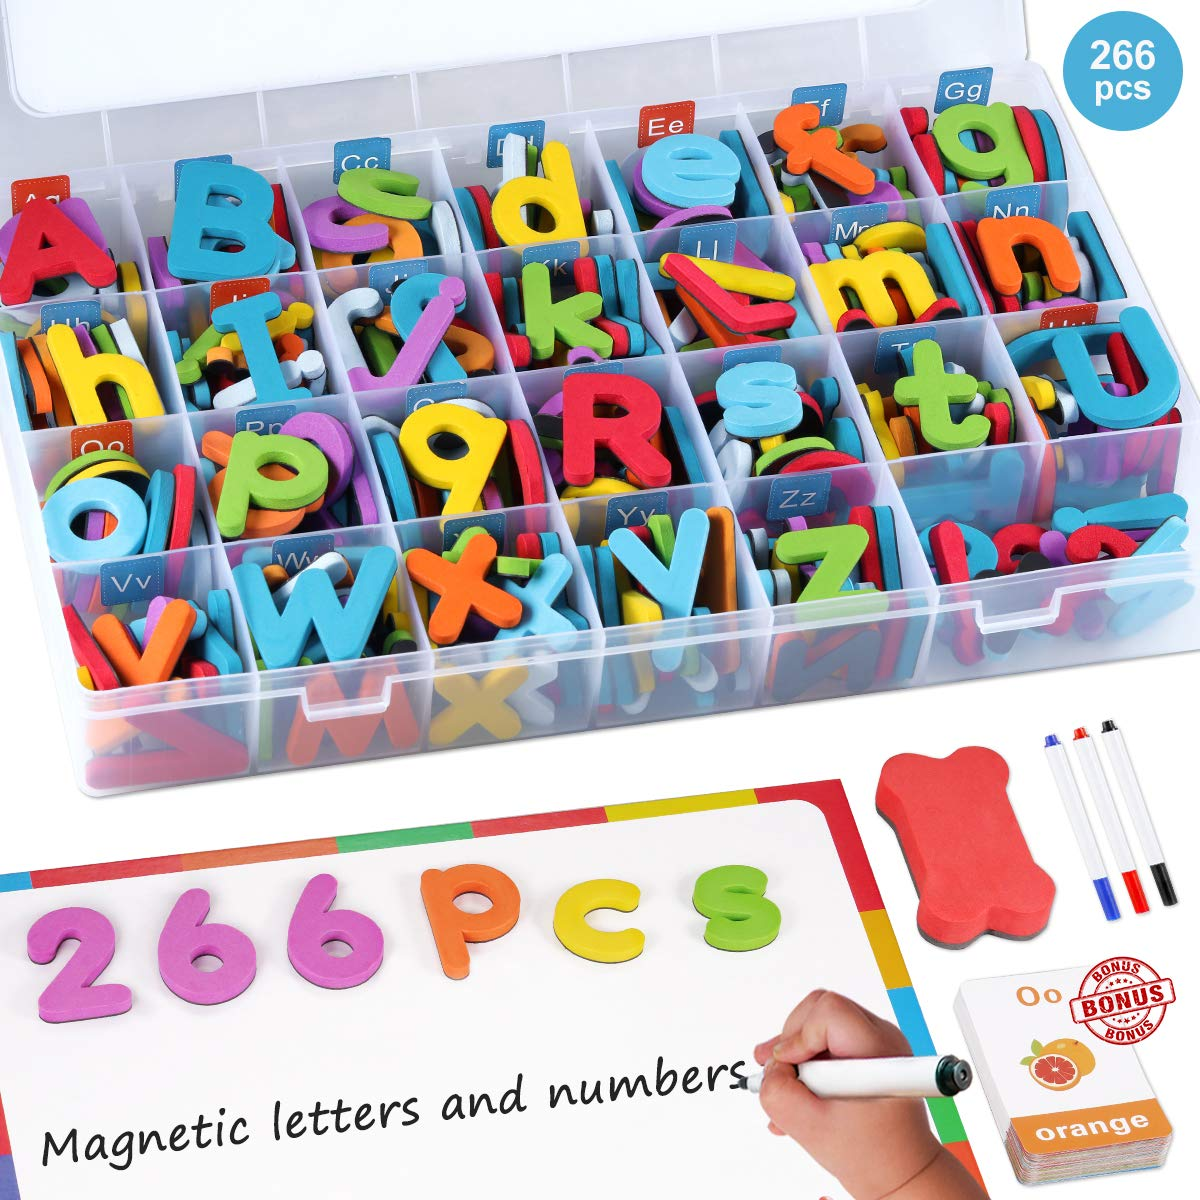 Magnetic Letters Kit, 266 Pcs A-Z Foam Magnetic Letters, Refrigerator Alphabet Magnets Letters with Double-Side Magnet Board, Educational Refrigerator Magnets for Preschool Learning Spelling